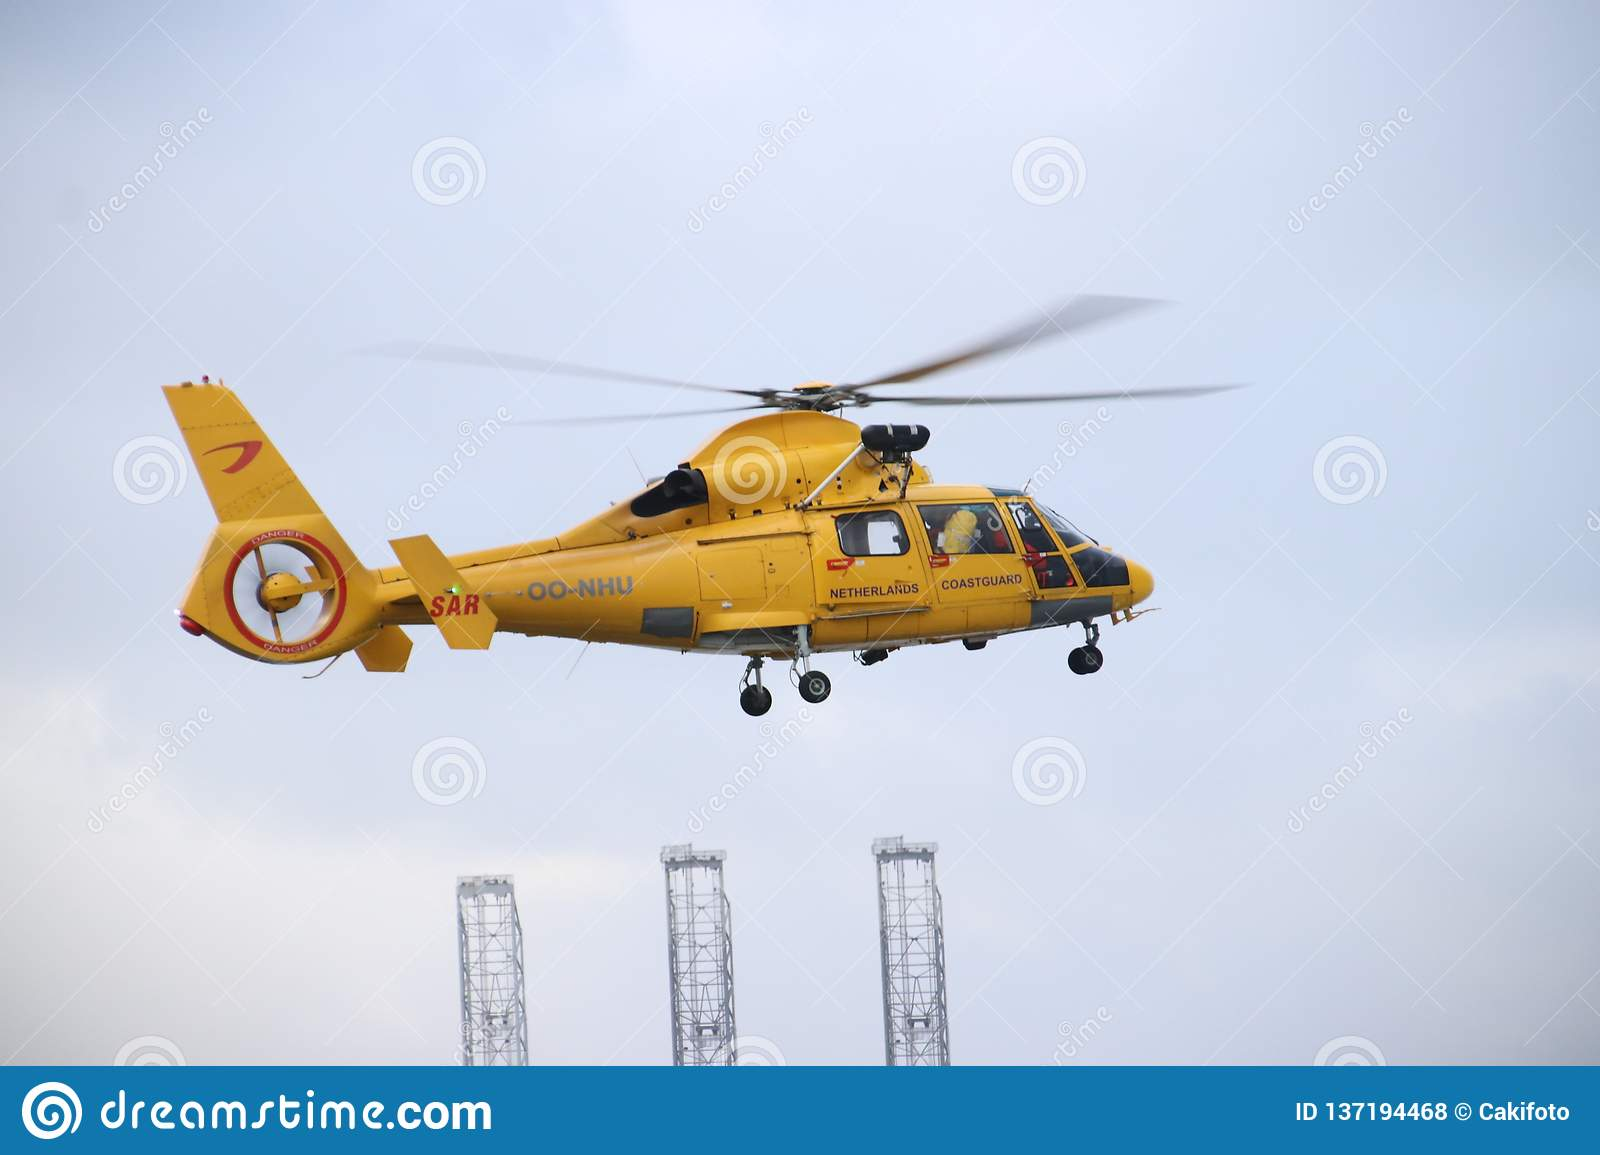 OO-NHU helicopter from the coastguard in the Netherlands is leaving platform for action in the Europoort harbor in the port of Rot